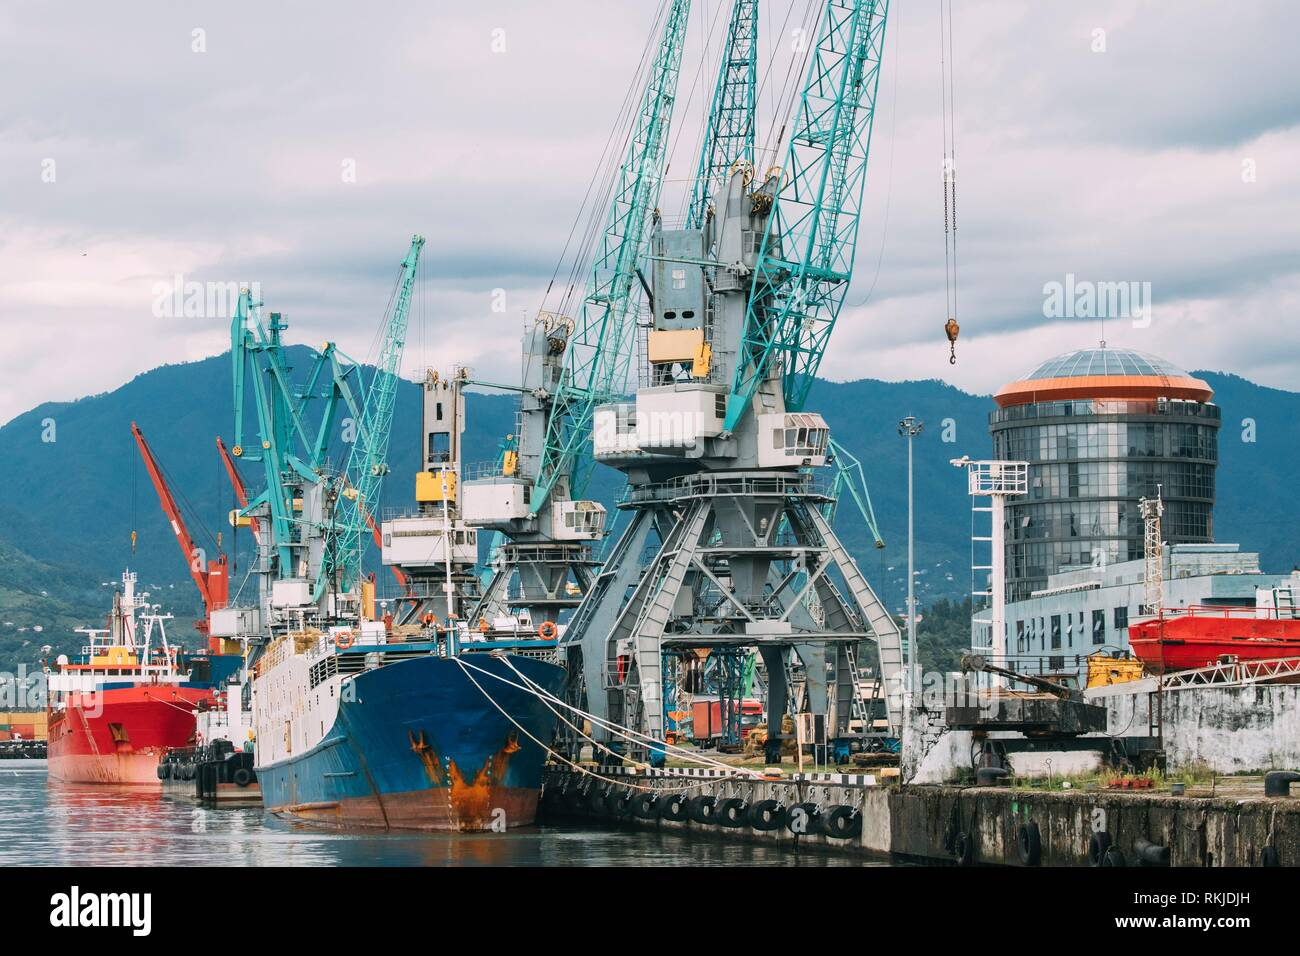 Batumi, Adjara, Georgia. Old Barge Freight Ship Tanker And Heavy Loading Cranes Jib In Port Dock. - Stock Image